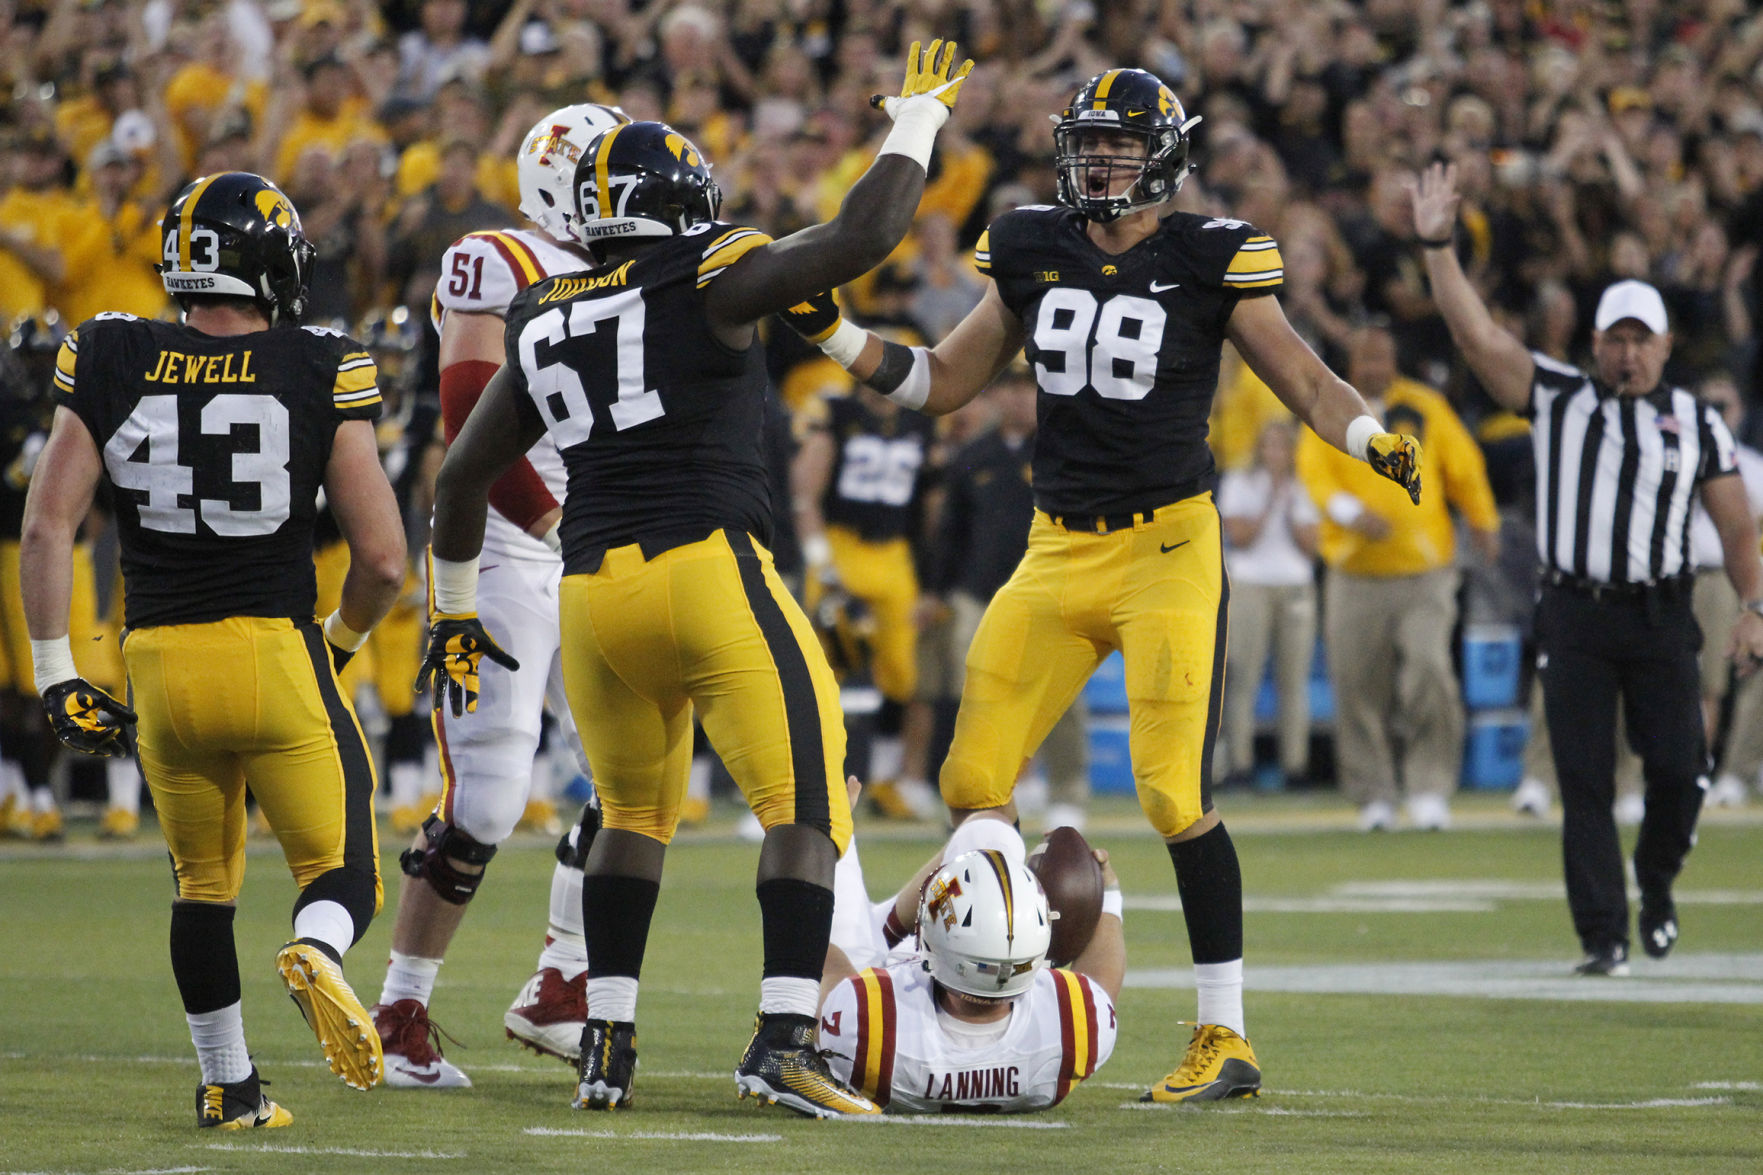 Hawkeyes Outlast the Cyclones in a CyHawk Shootout Instant Classic